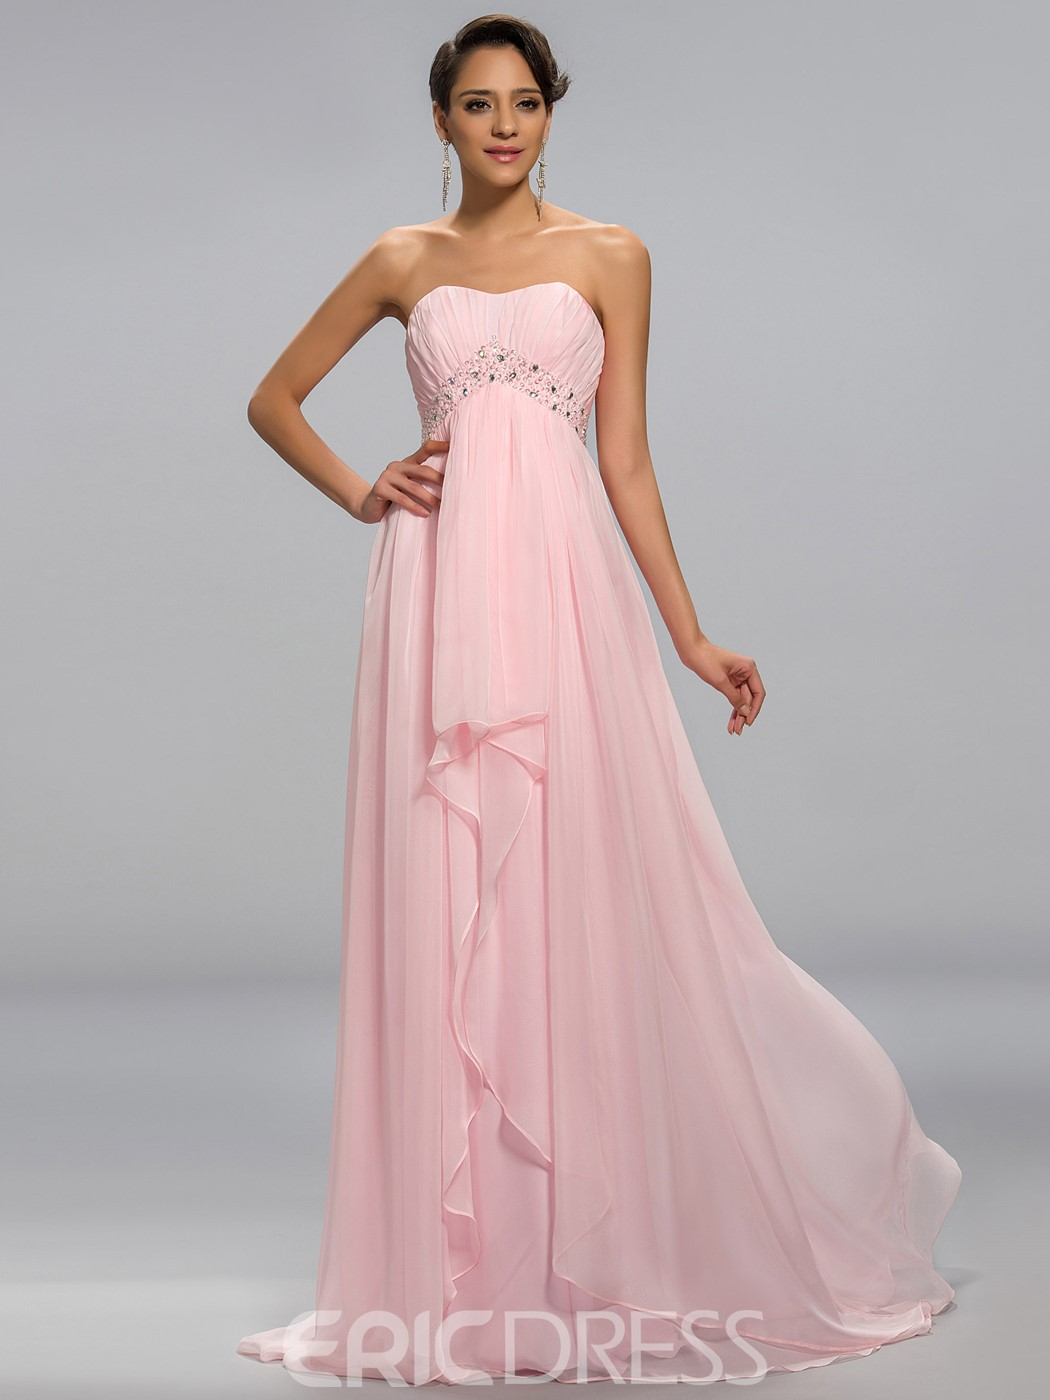 Concise Strapless Beaded Floor Length Prom Dress